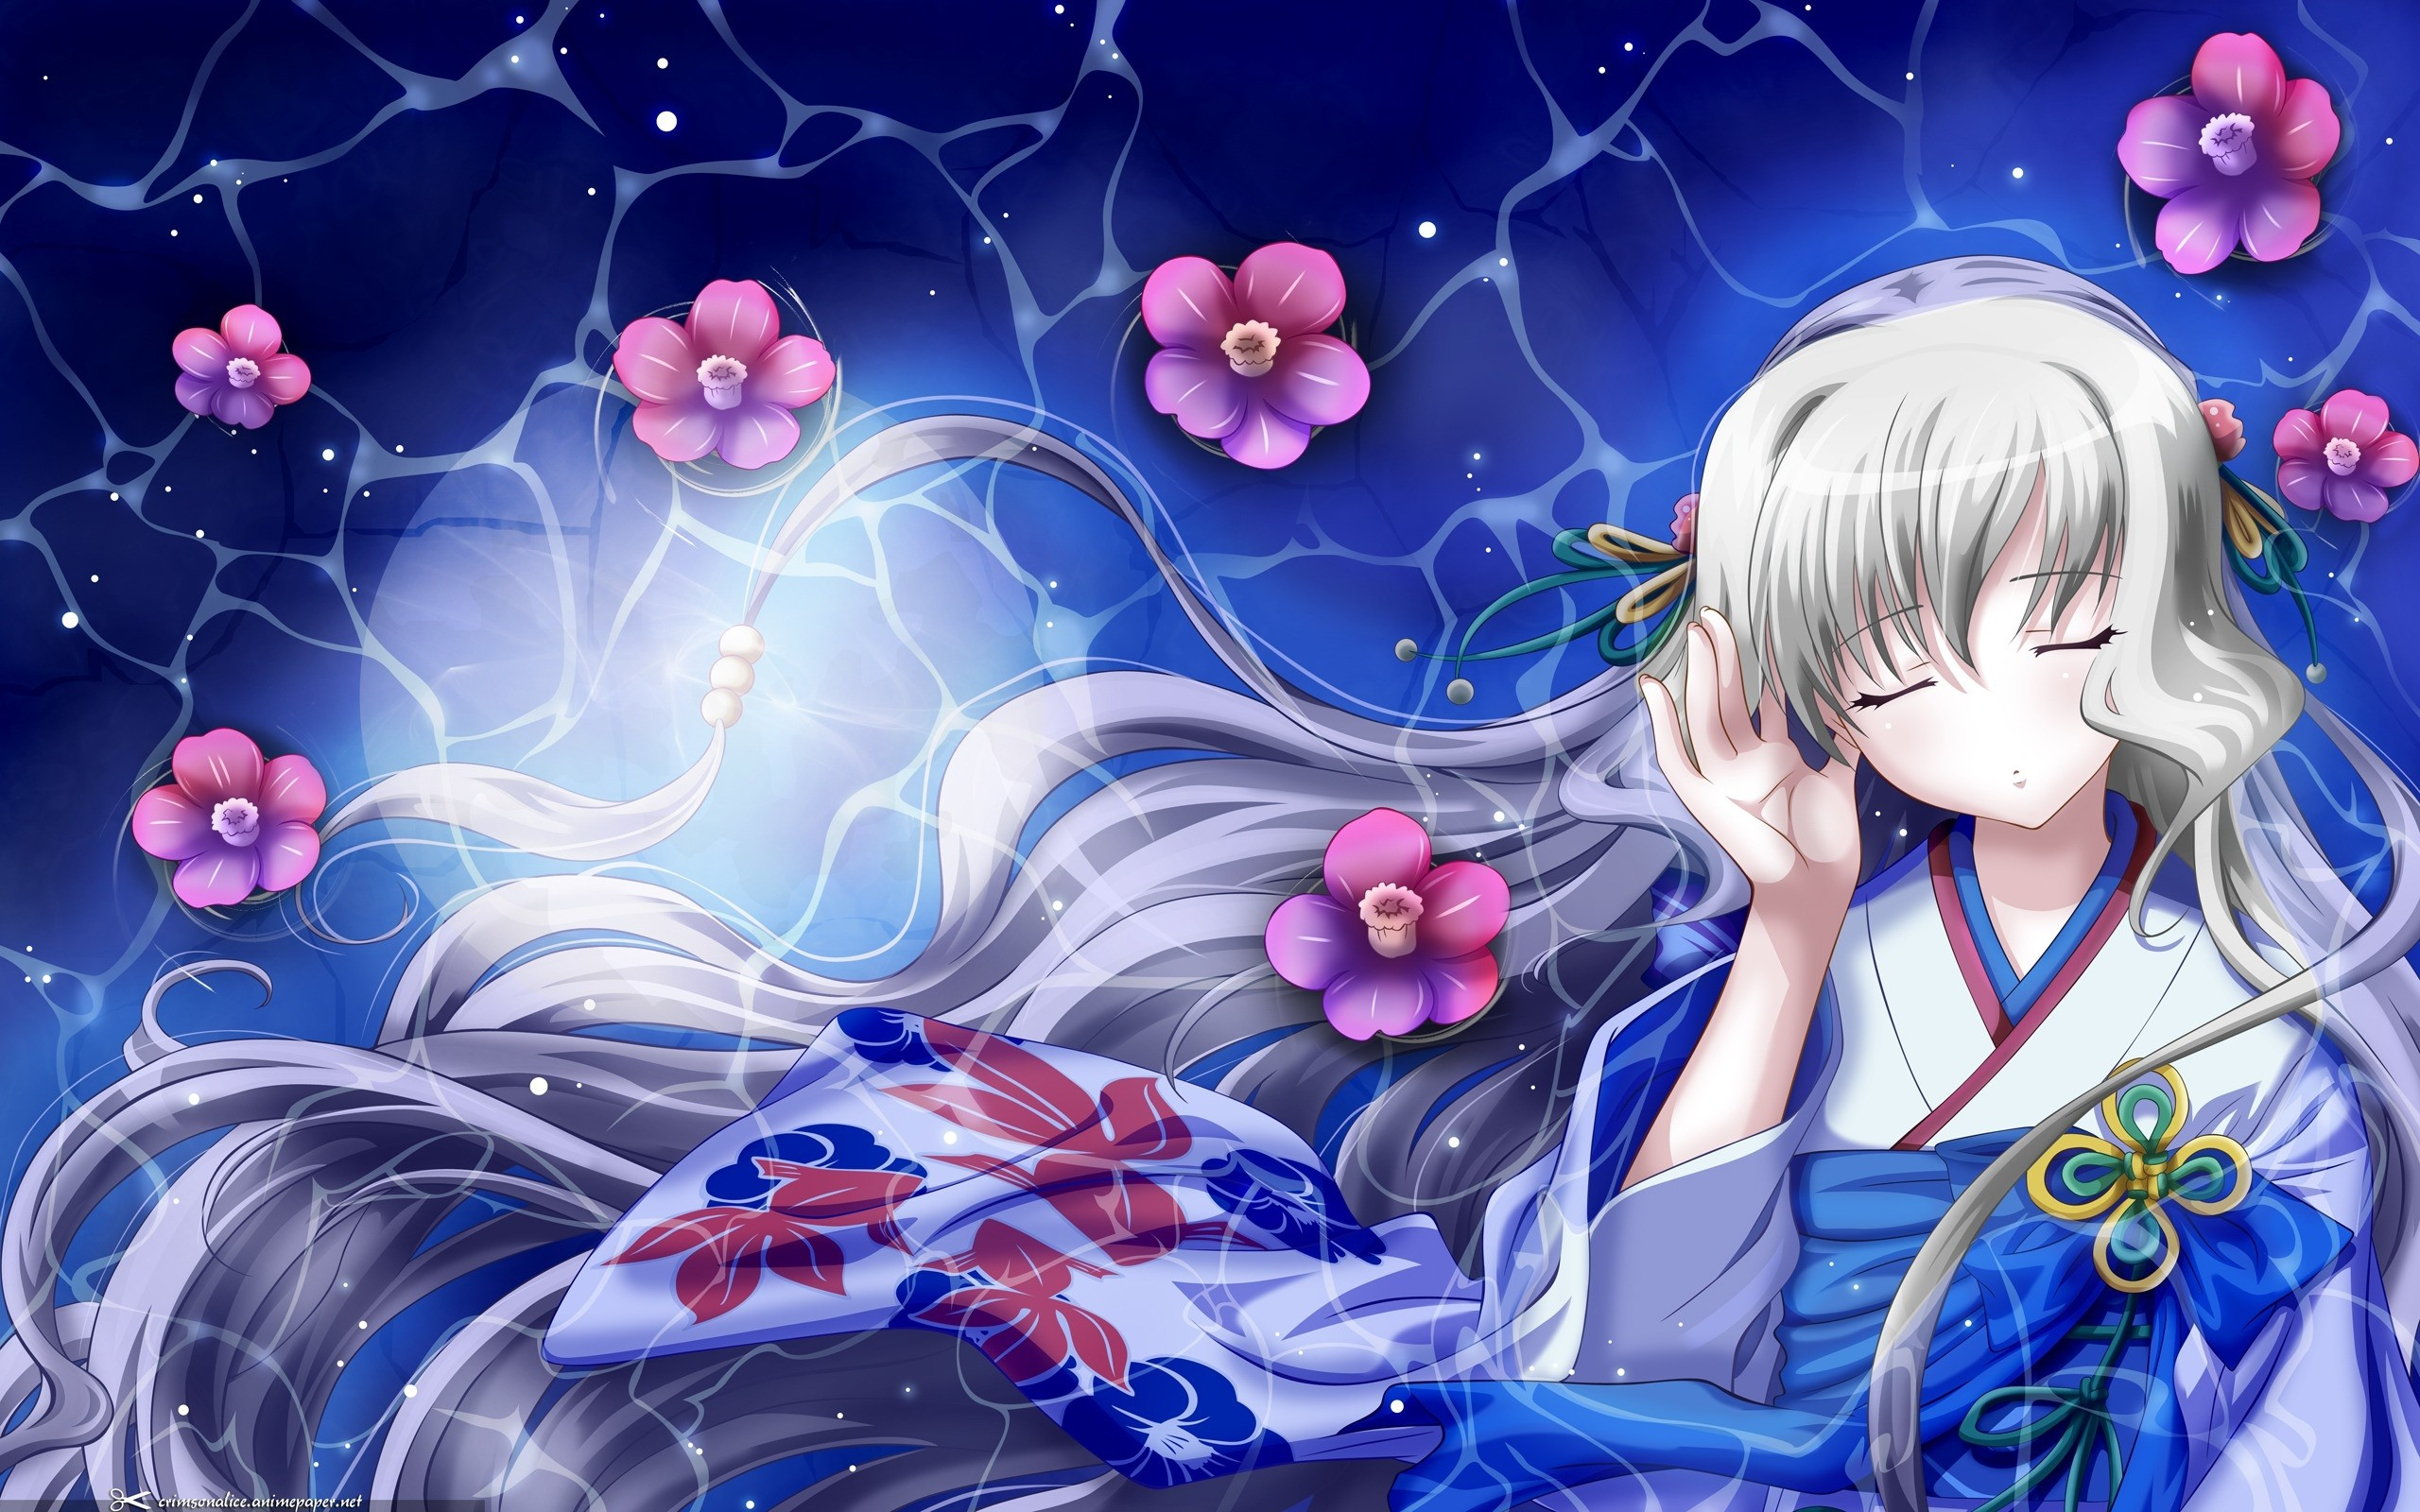 Res: 2560x1600, Otaku 4ever equal! images =D HD wallpaper and background photos